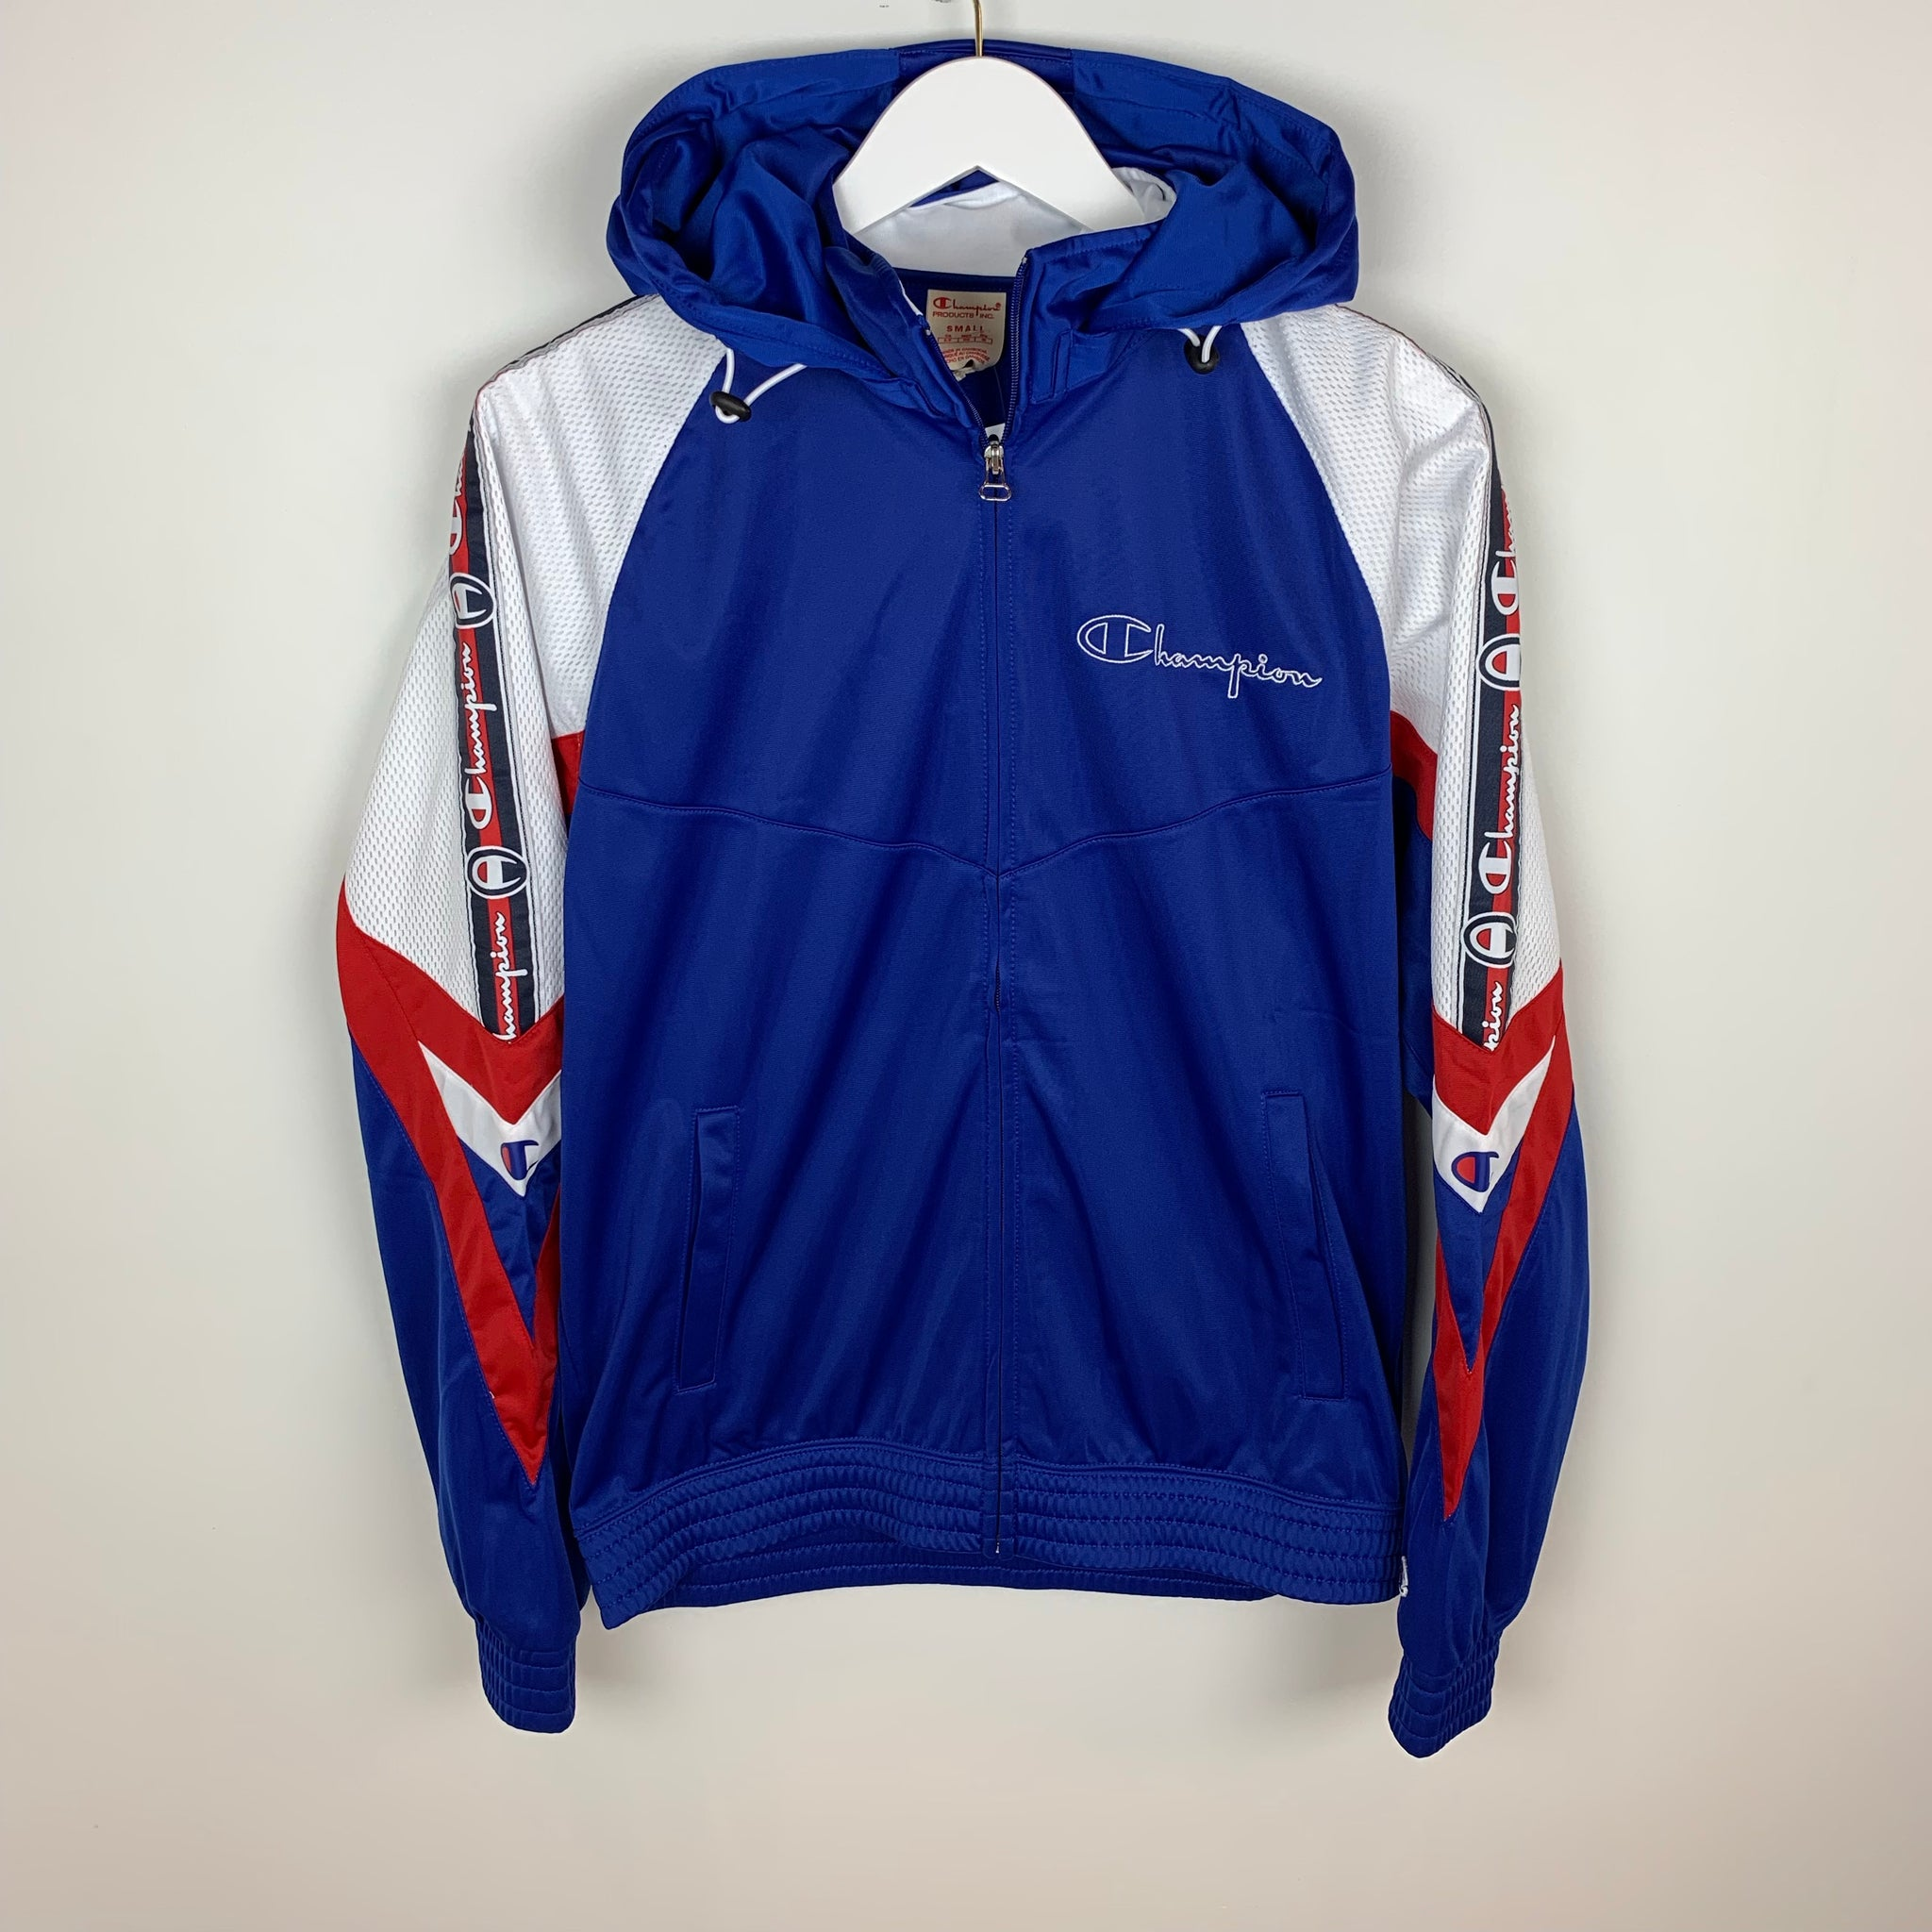 Champion Europe Reverse Weave, Athletic Jacket, Blue